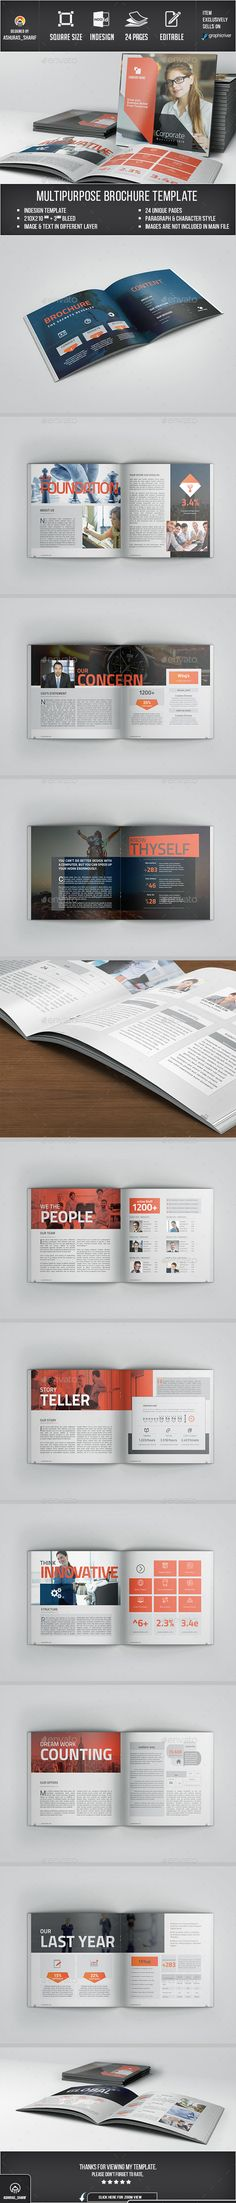 Corporate Brochure Template Indesign Indd Design Download Http